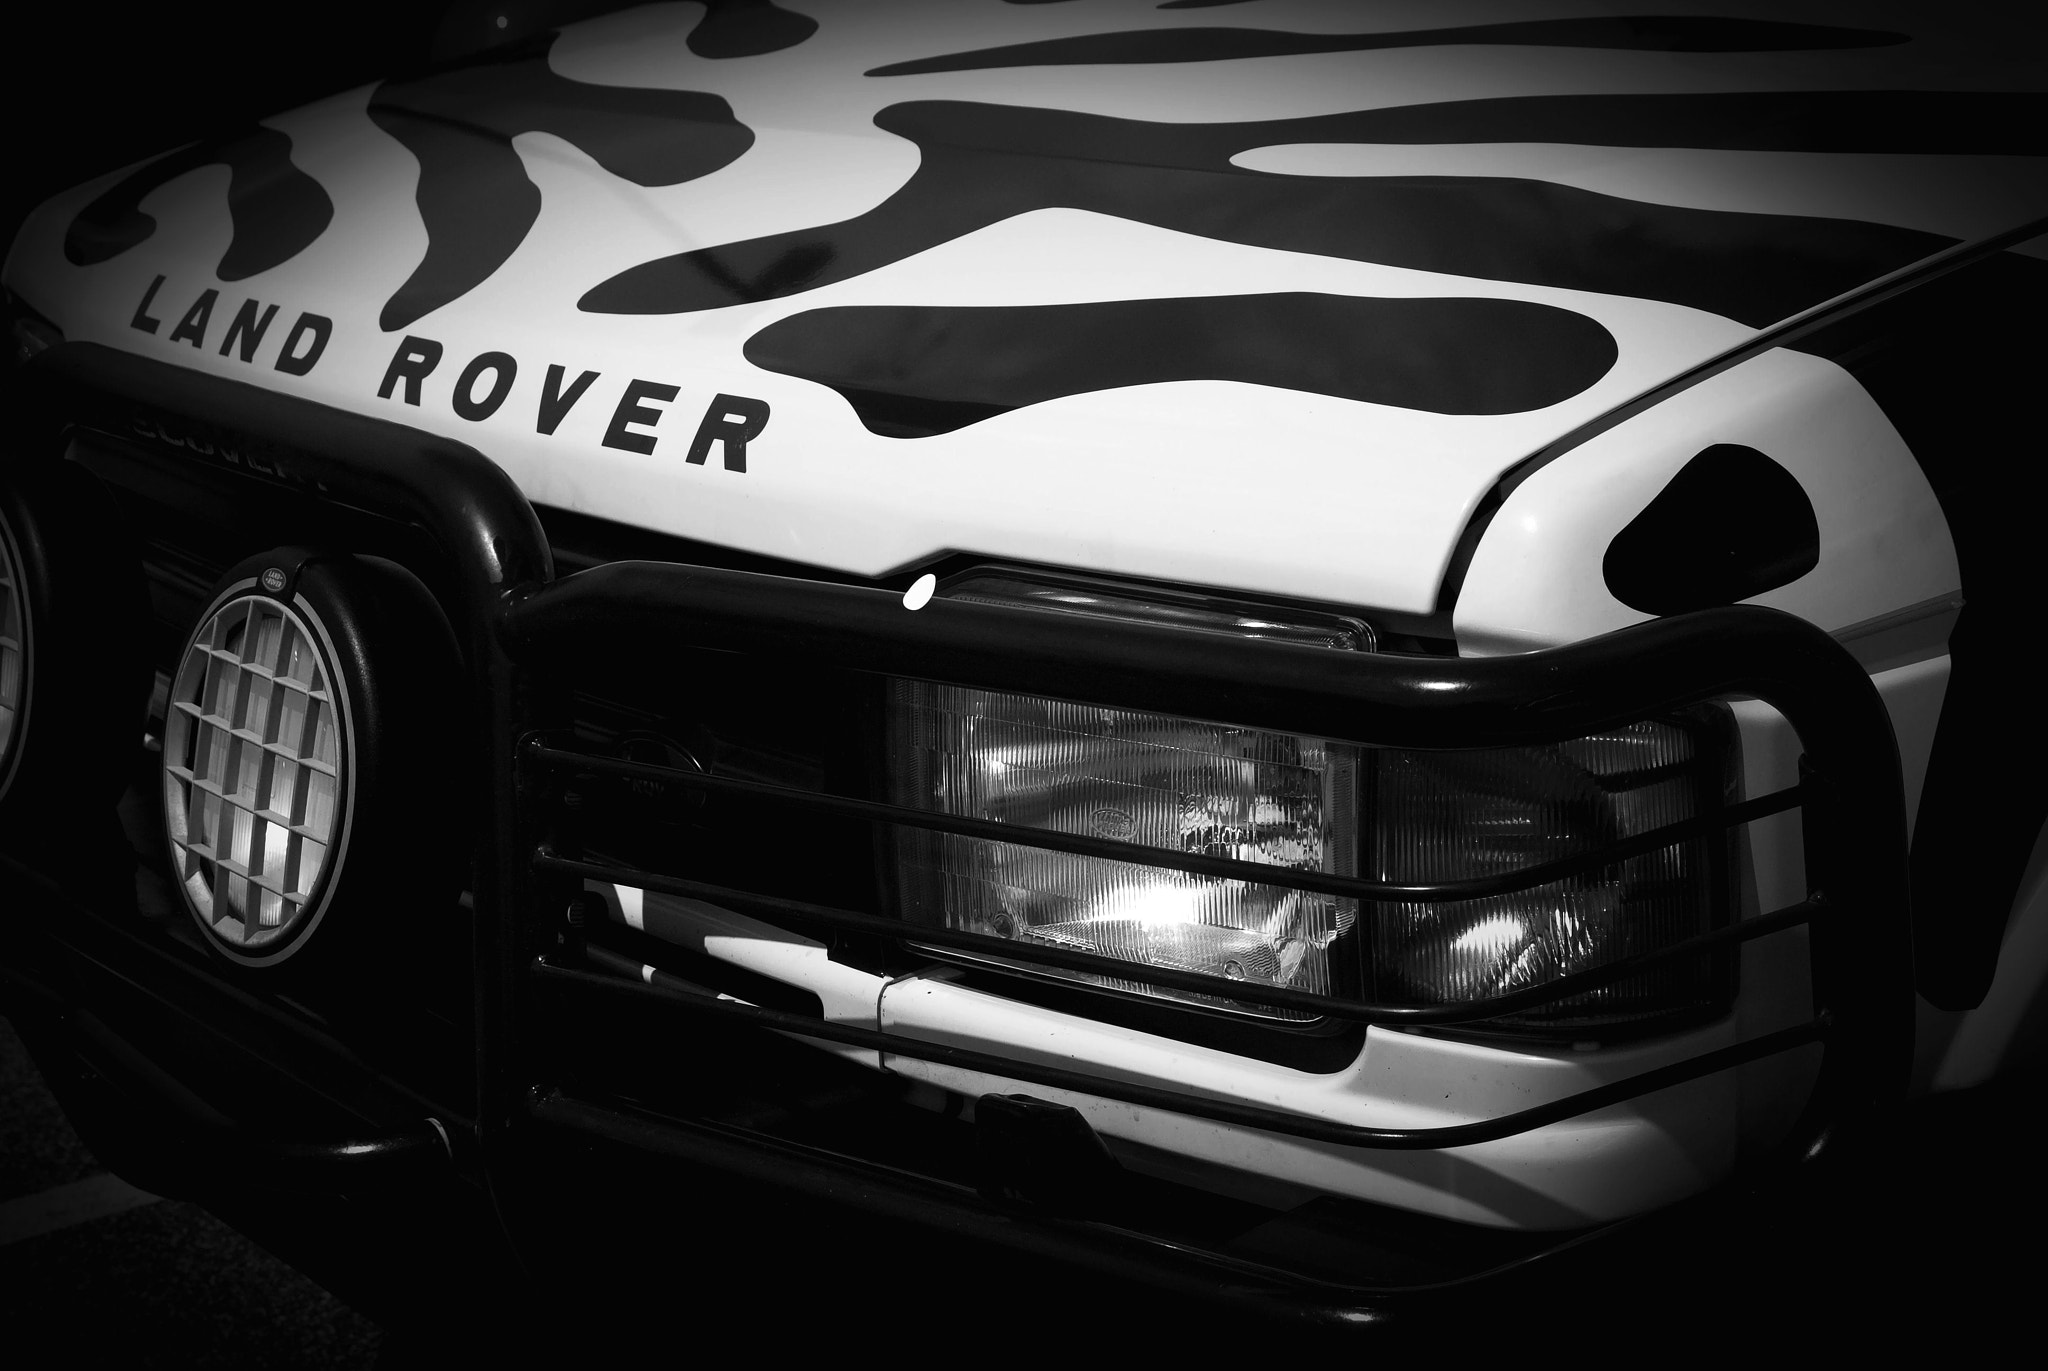 Photograph Land Rover Zebra by Maria Schlossberg on 500px